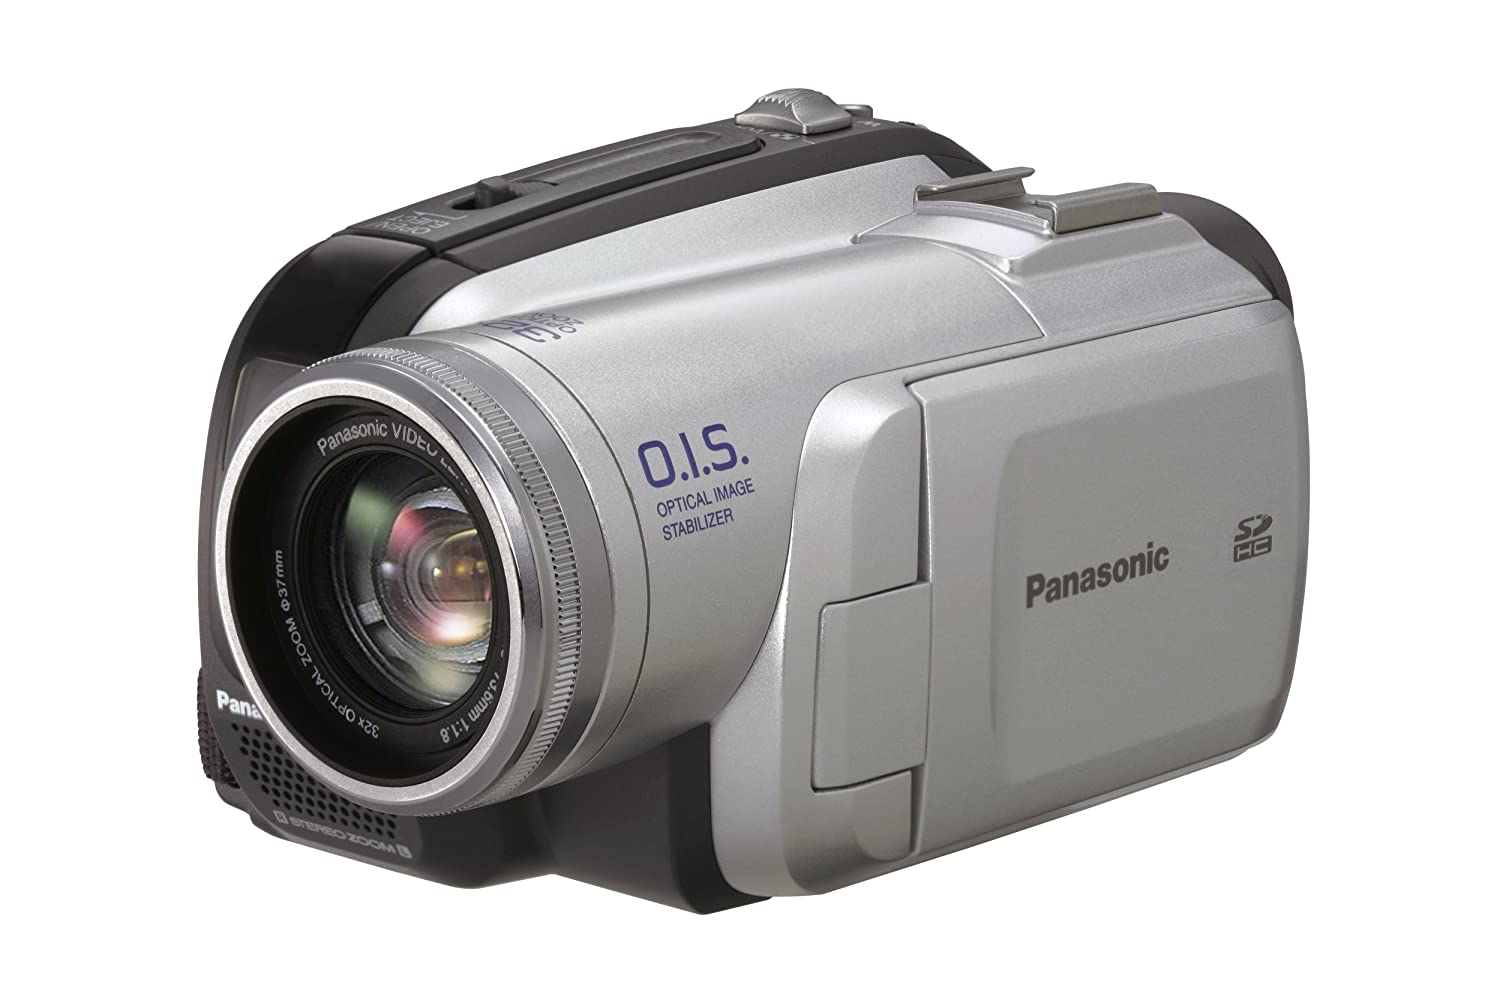 amazon com panasonic pv gs85 minidv camcorder with 32x optical rh amazon com Panasonic Handicam Panasonic Studio Camera